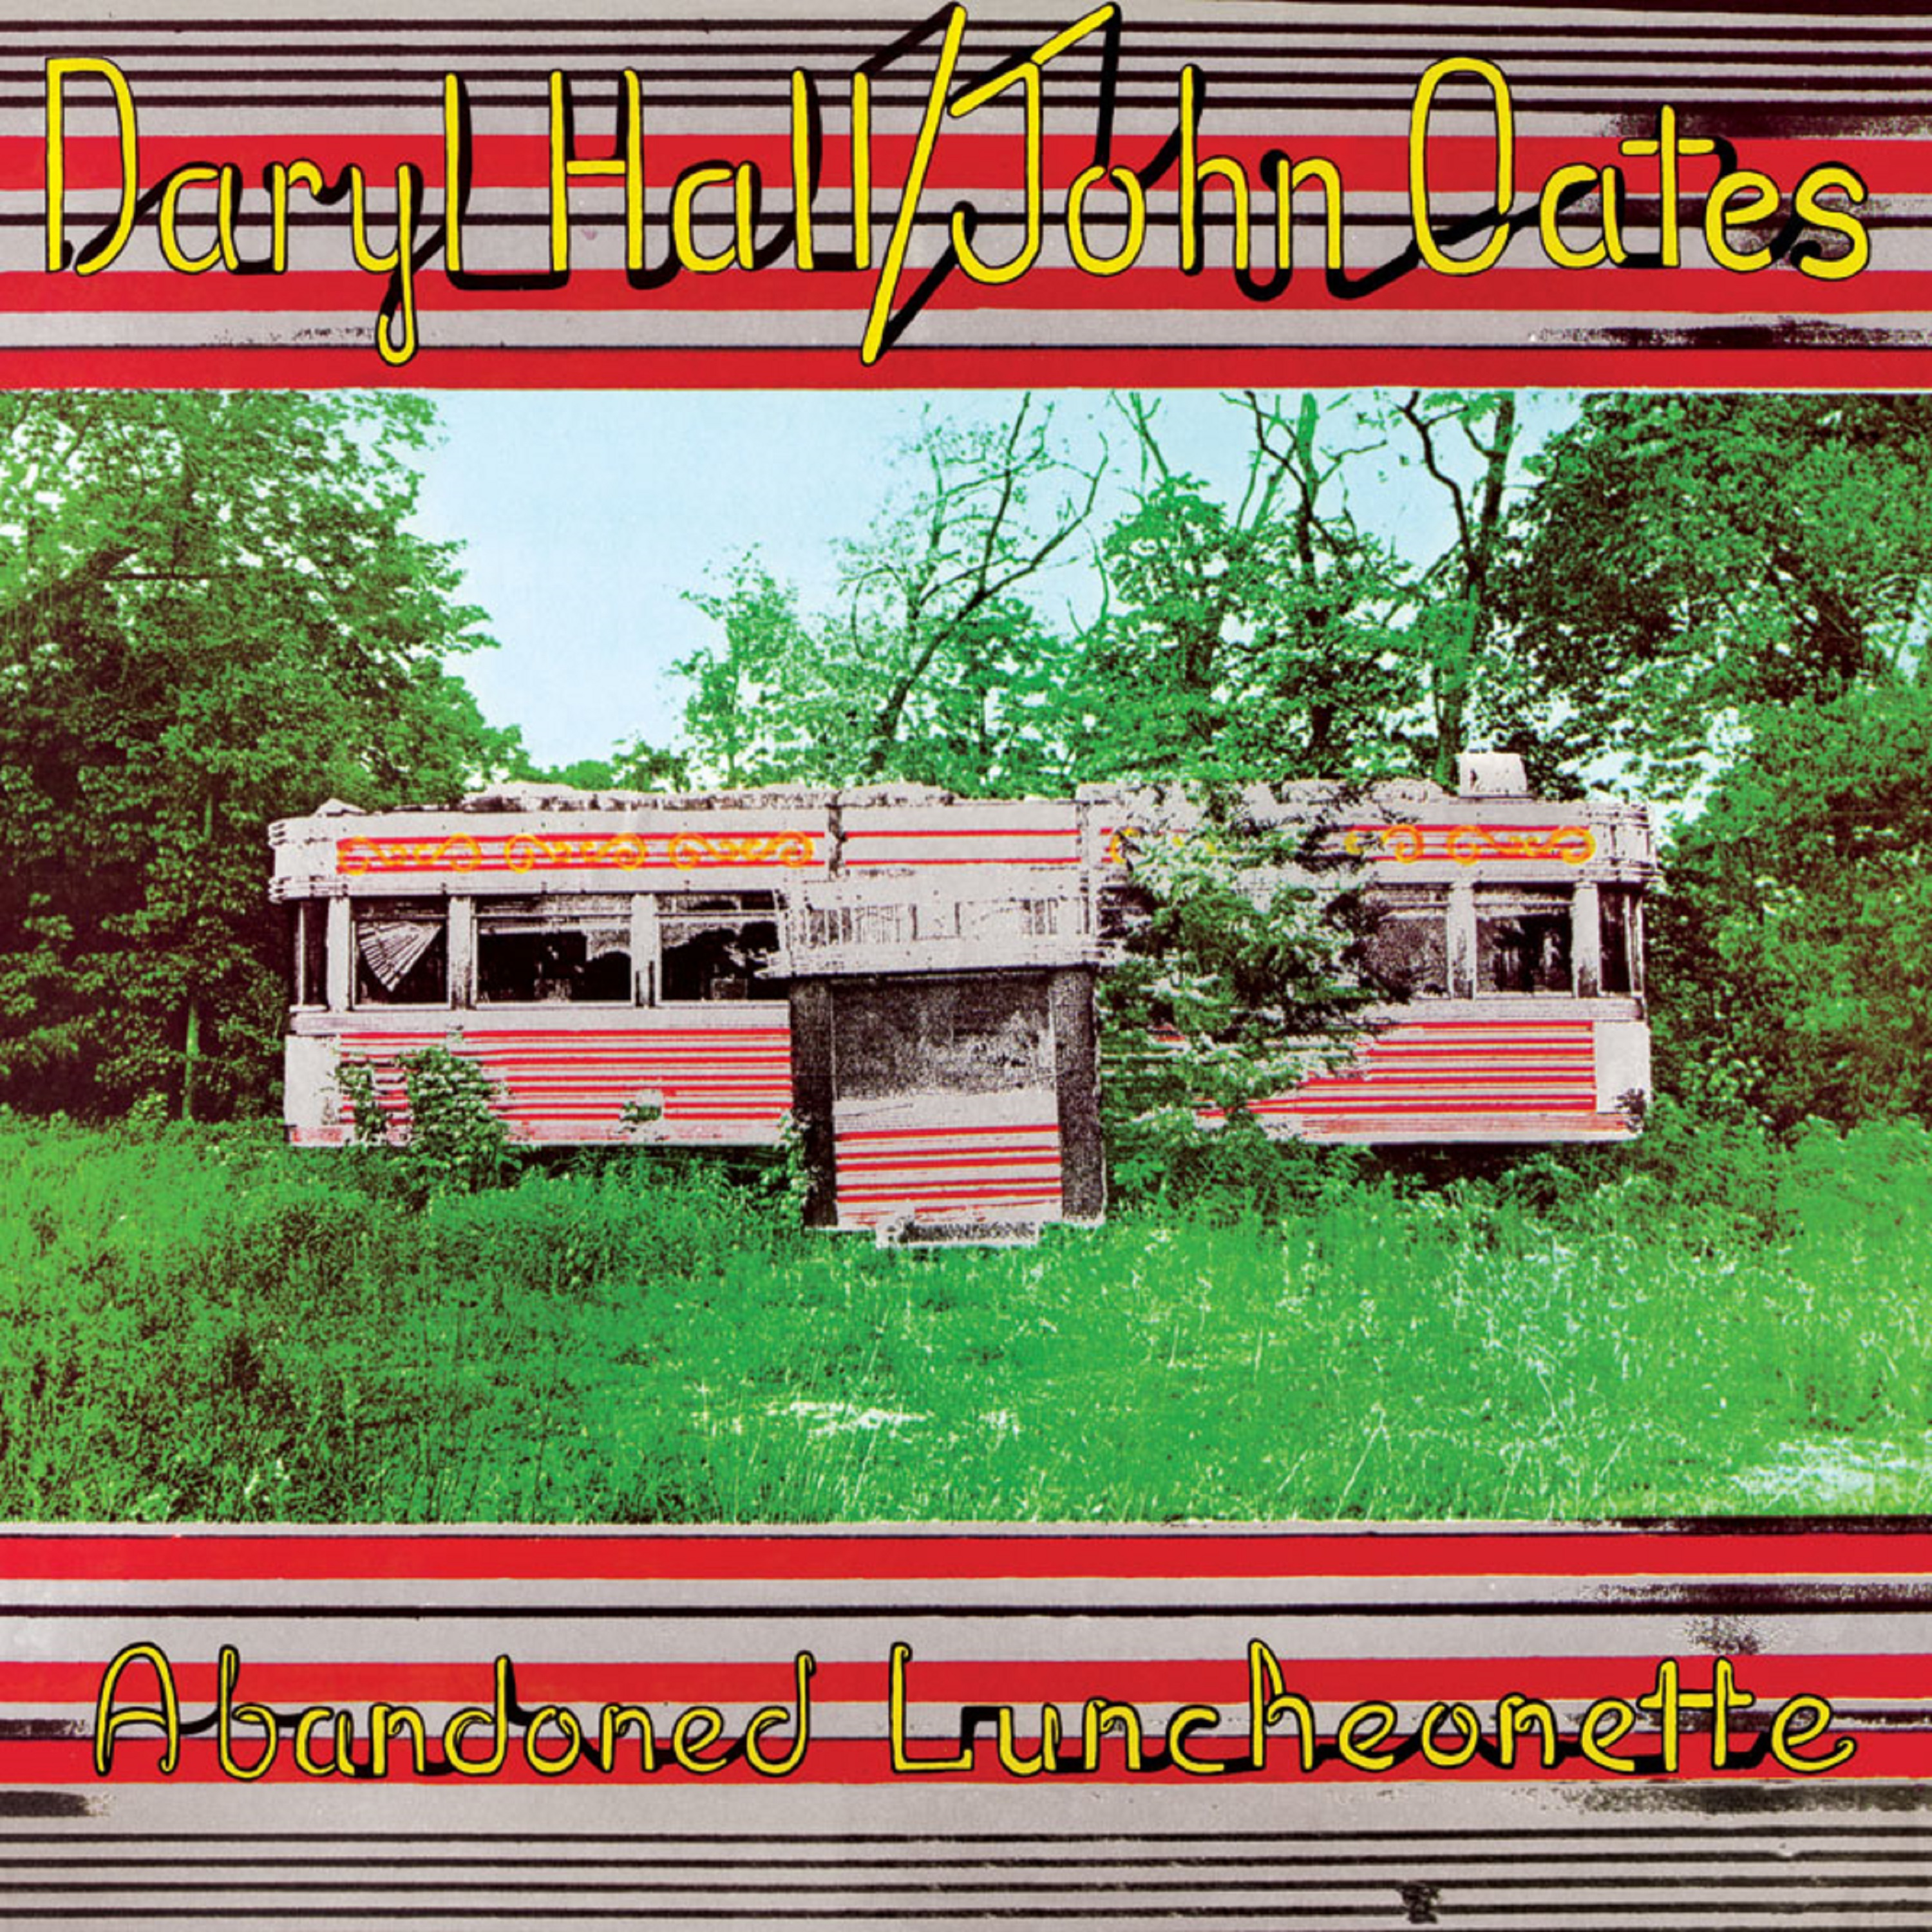 Daryl Hall & John Oates - Abandoned Luncheonette (180 Gram Translucent Red Audiophile Vinyl/Limited Anniversary Edition/Gatefold Cover)